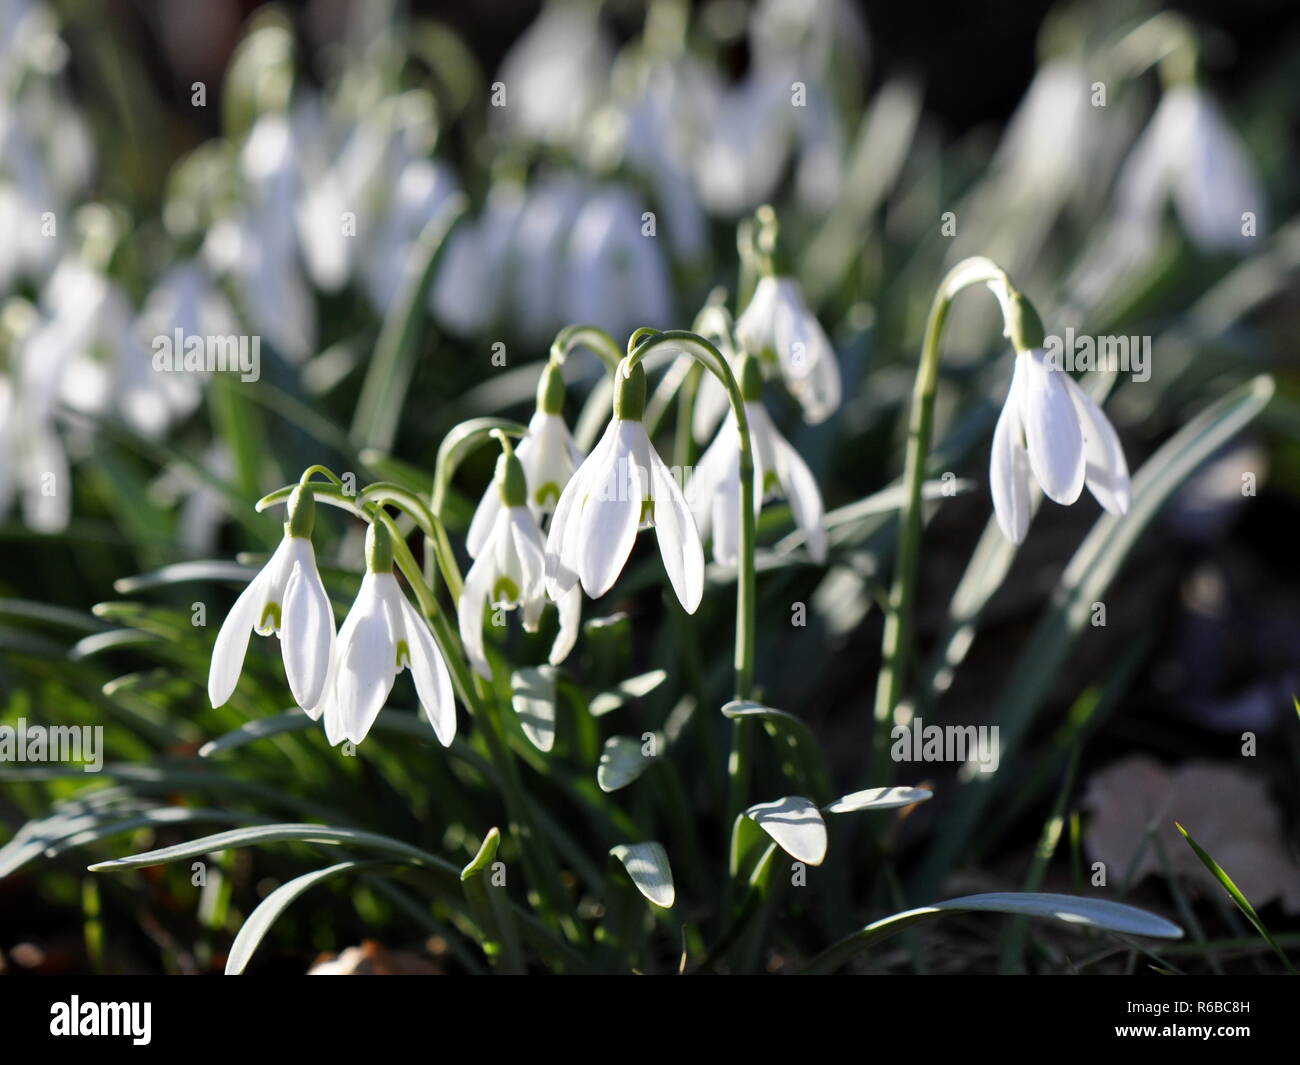 Snowdrop flower Galanthus nivalis in early spring - Stock Image